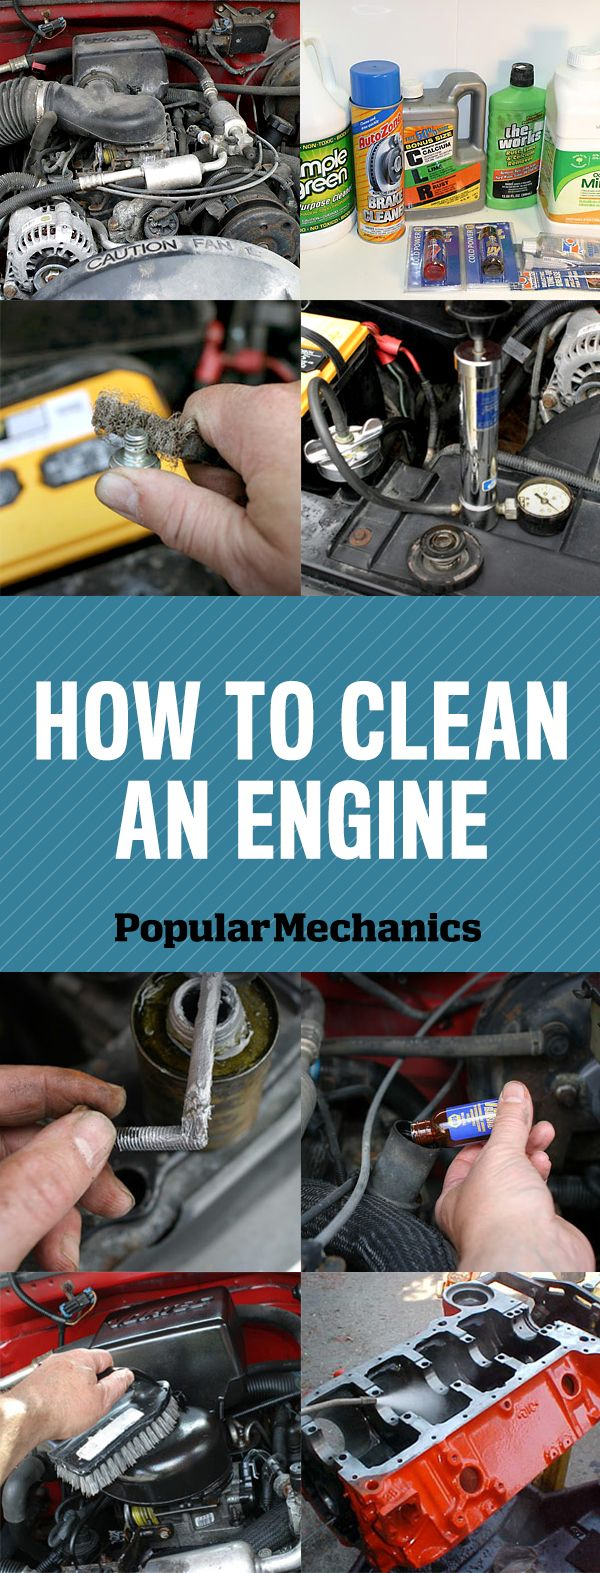 Whether you are looking to prep your car for sale, get it clean prior to mechanical surgery, or merely don't want to cringe when you open the hood, a little DIY cleaning will make a world of difference.